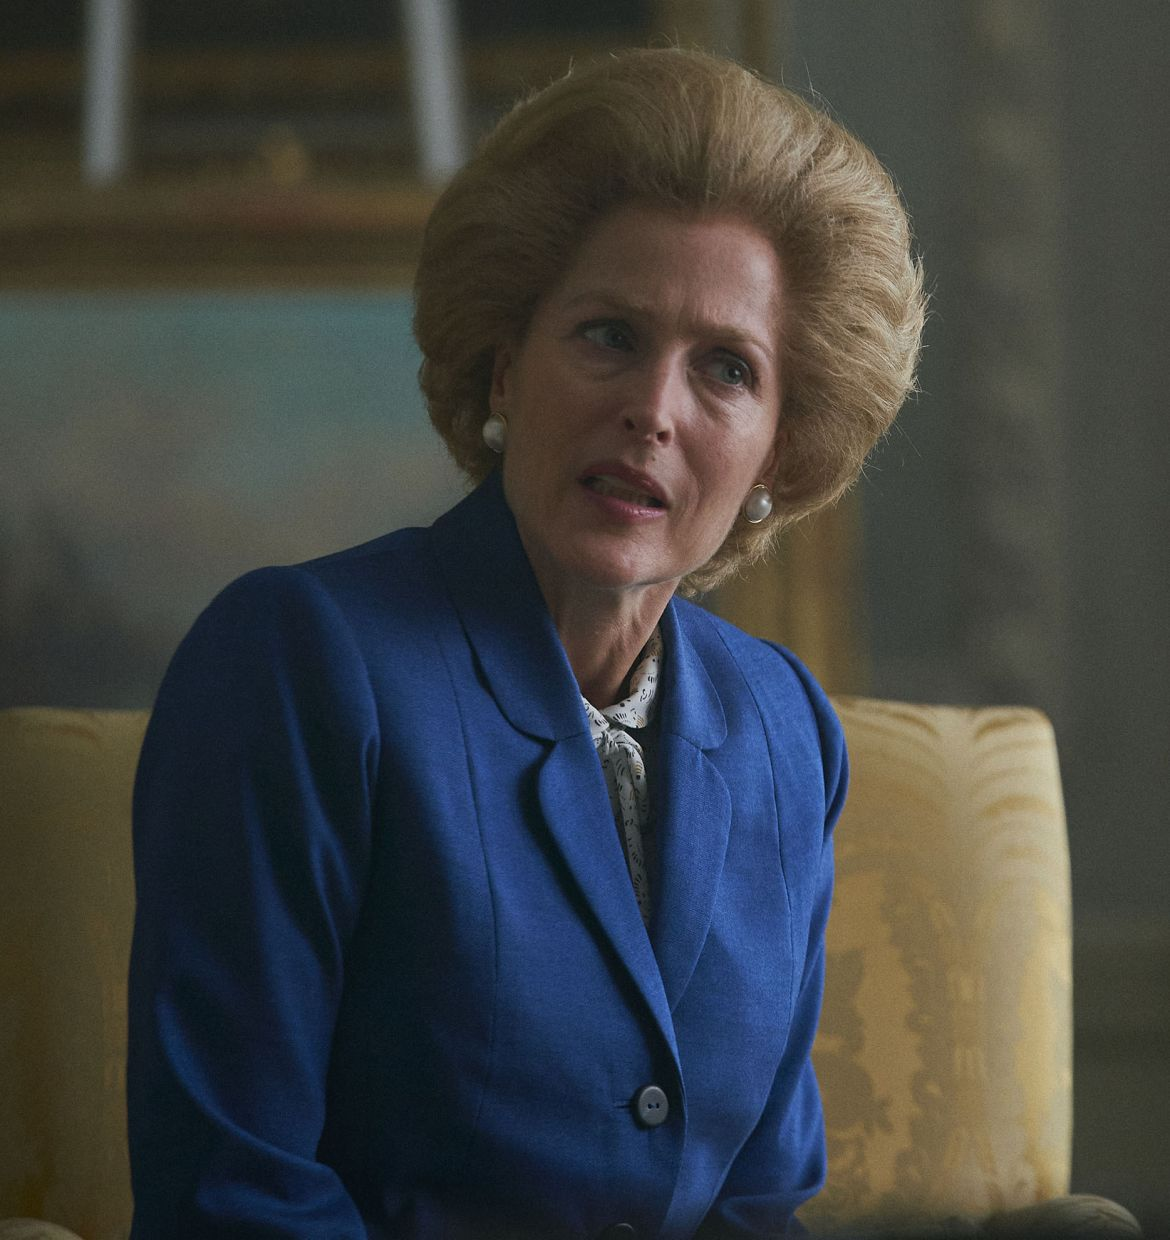 Gillian Anderson in a scene from 'The Crown'. Anderson was nominated for an Emmy Award for outstanding supporting actress in a drama series. Photo: Netflix